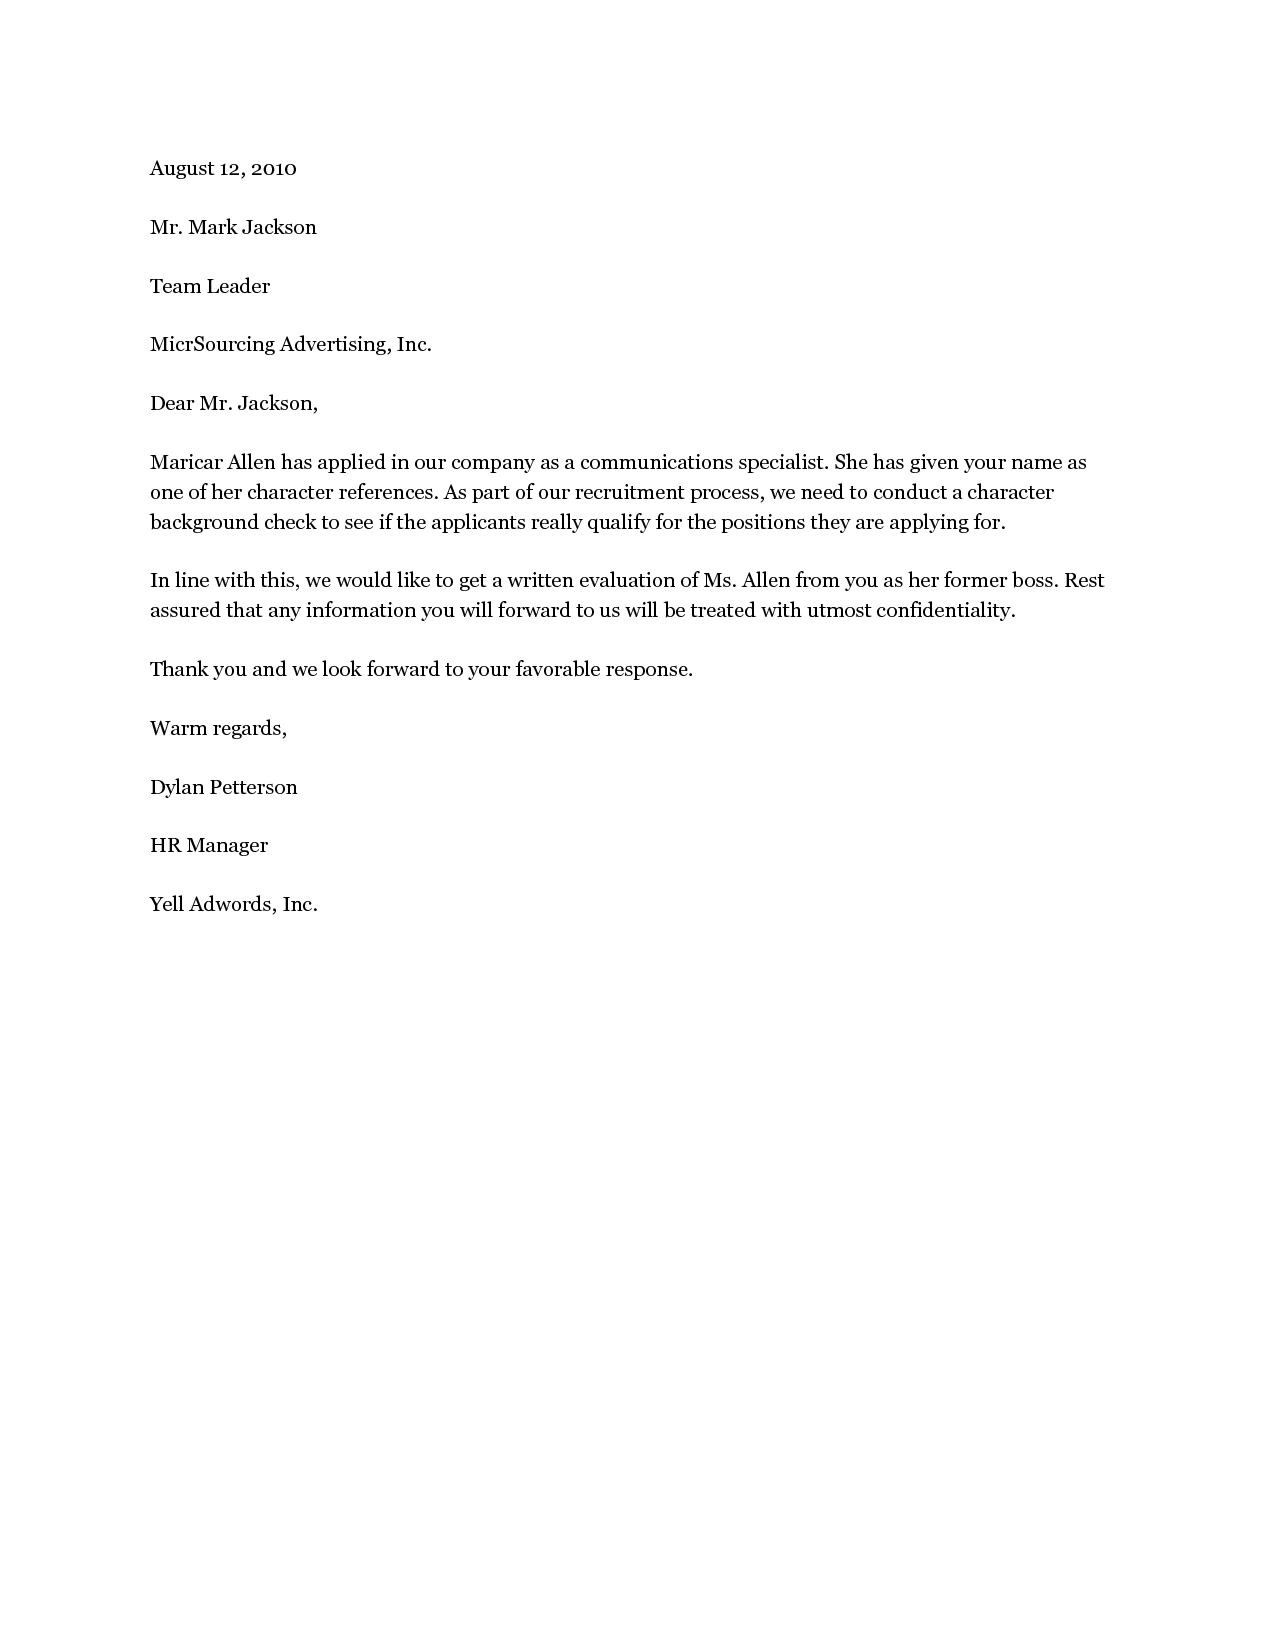 character letter samples best business template re mendation